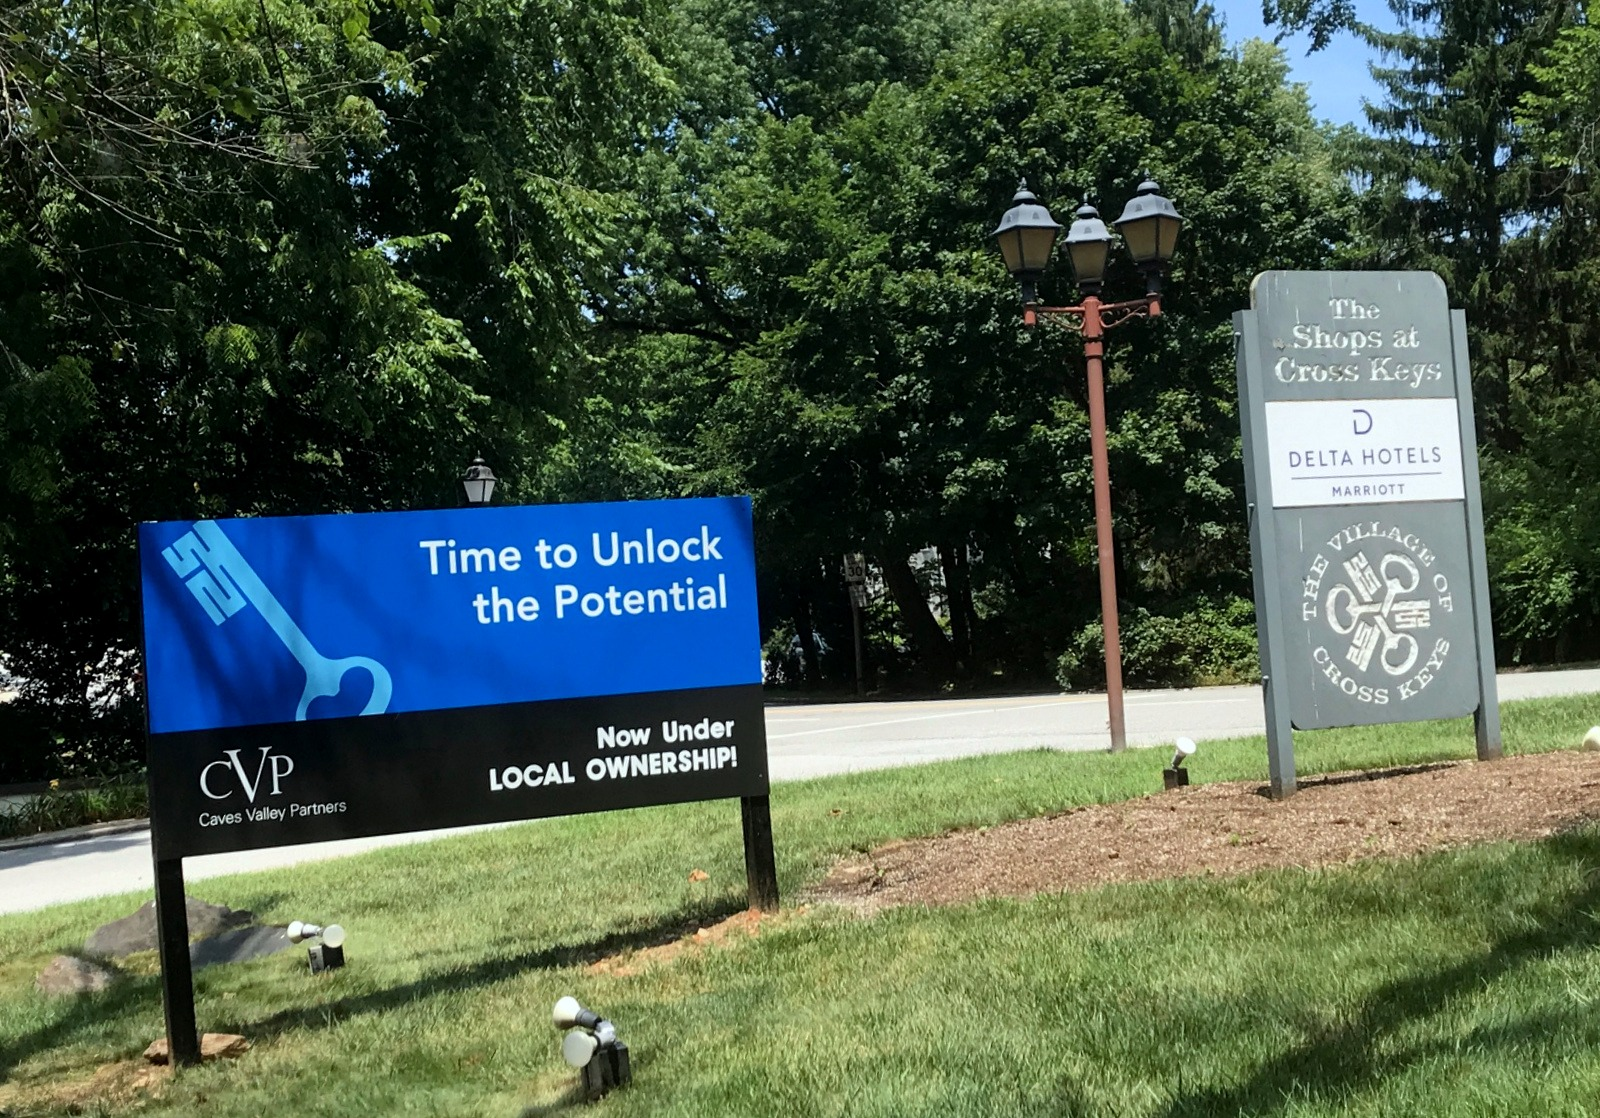 The Falls Road entrance to the Village features upbeat signage from the property's new owner. (Mark Reutter)